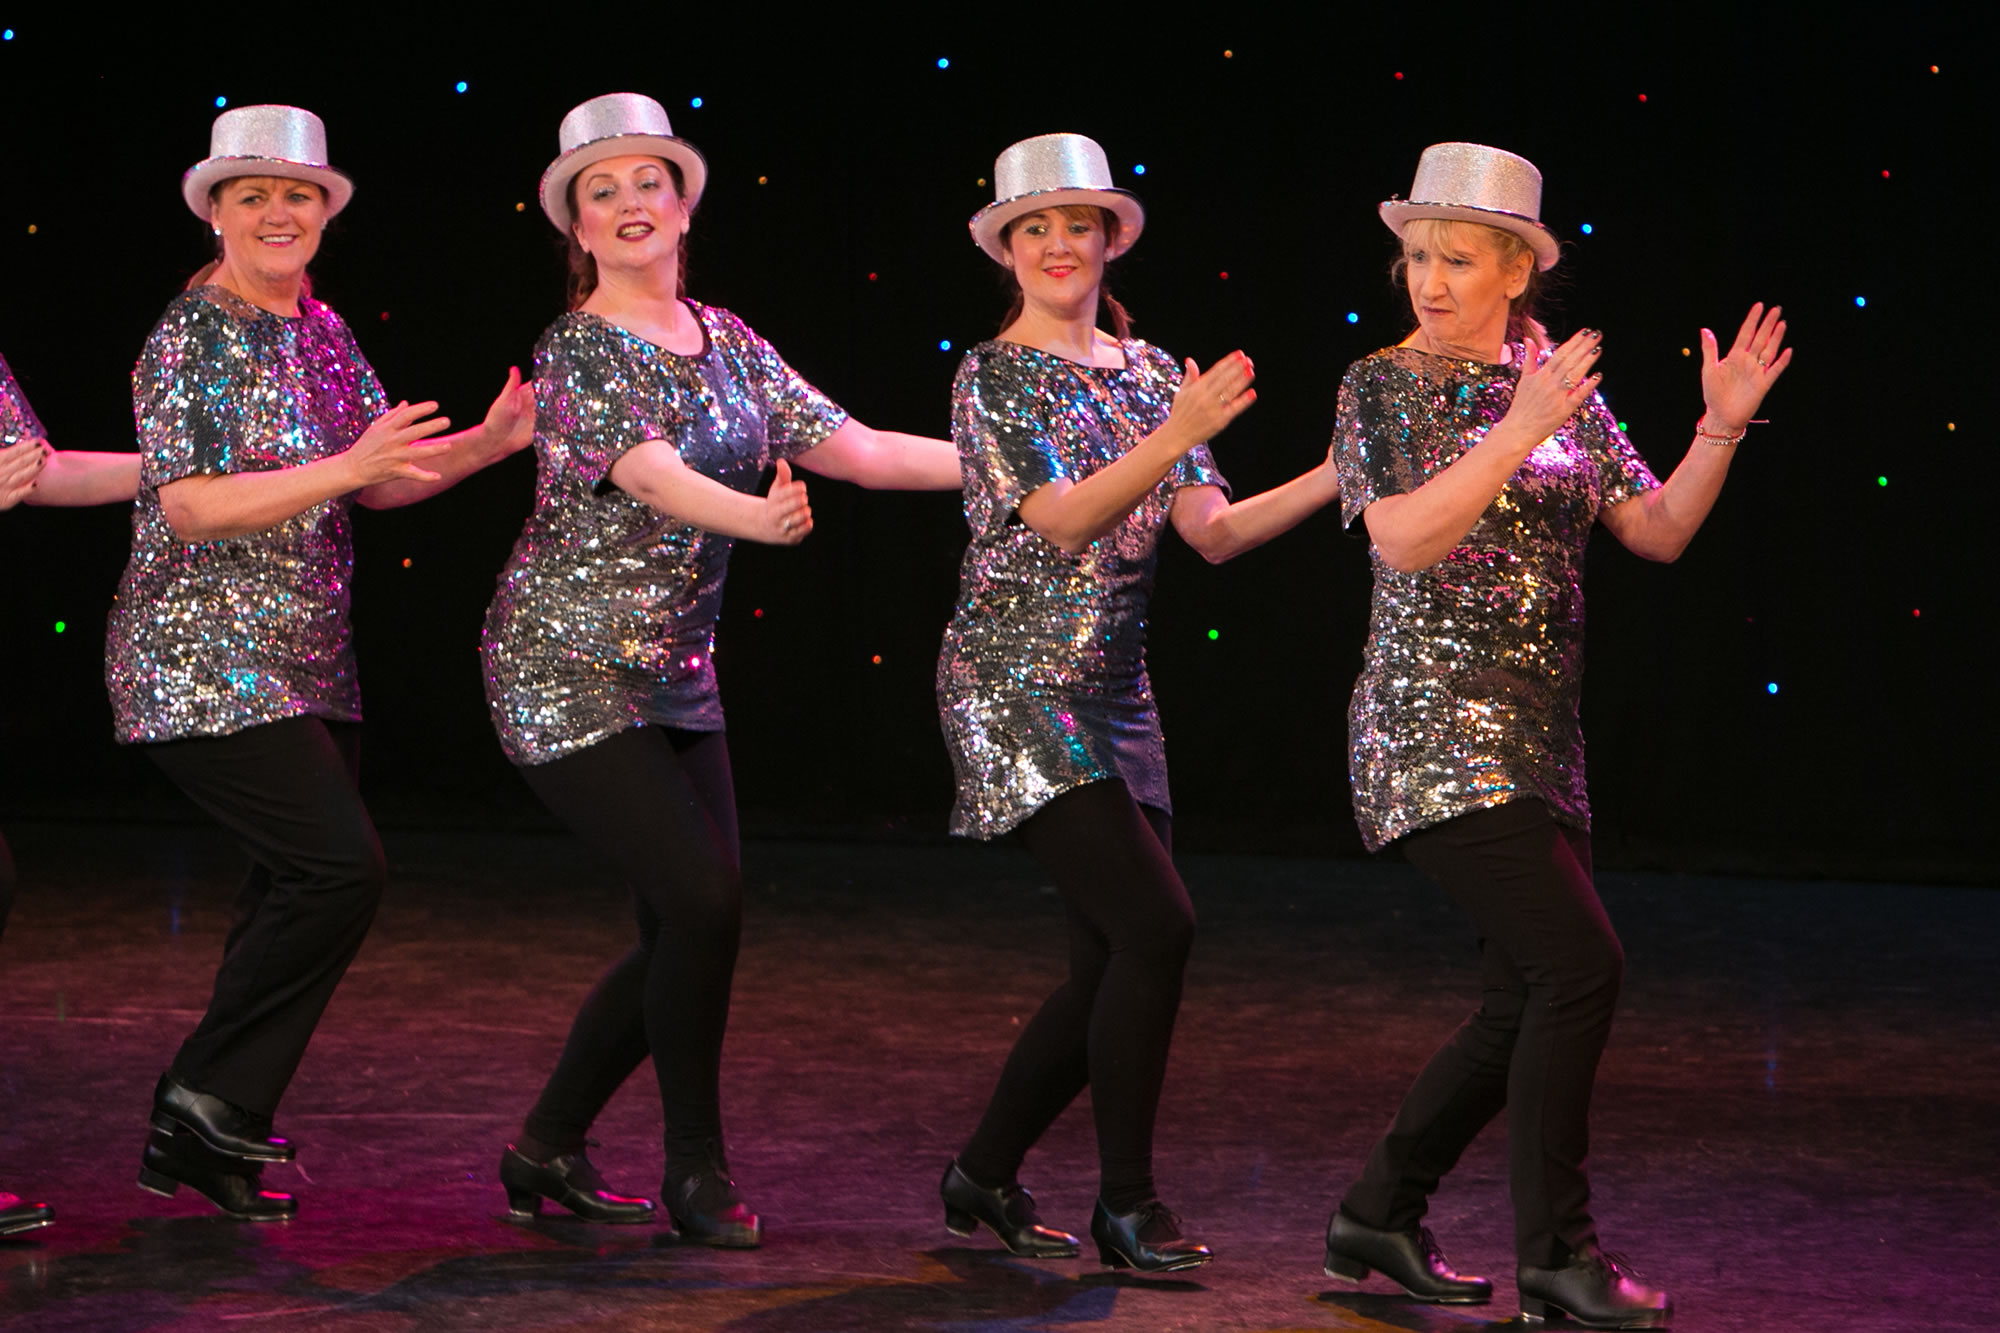 Hitchin_School_of_Dance_Show_2019-SM1_2965.jpg